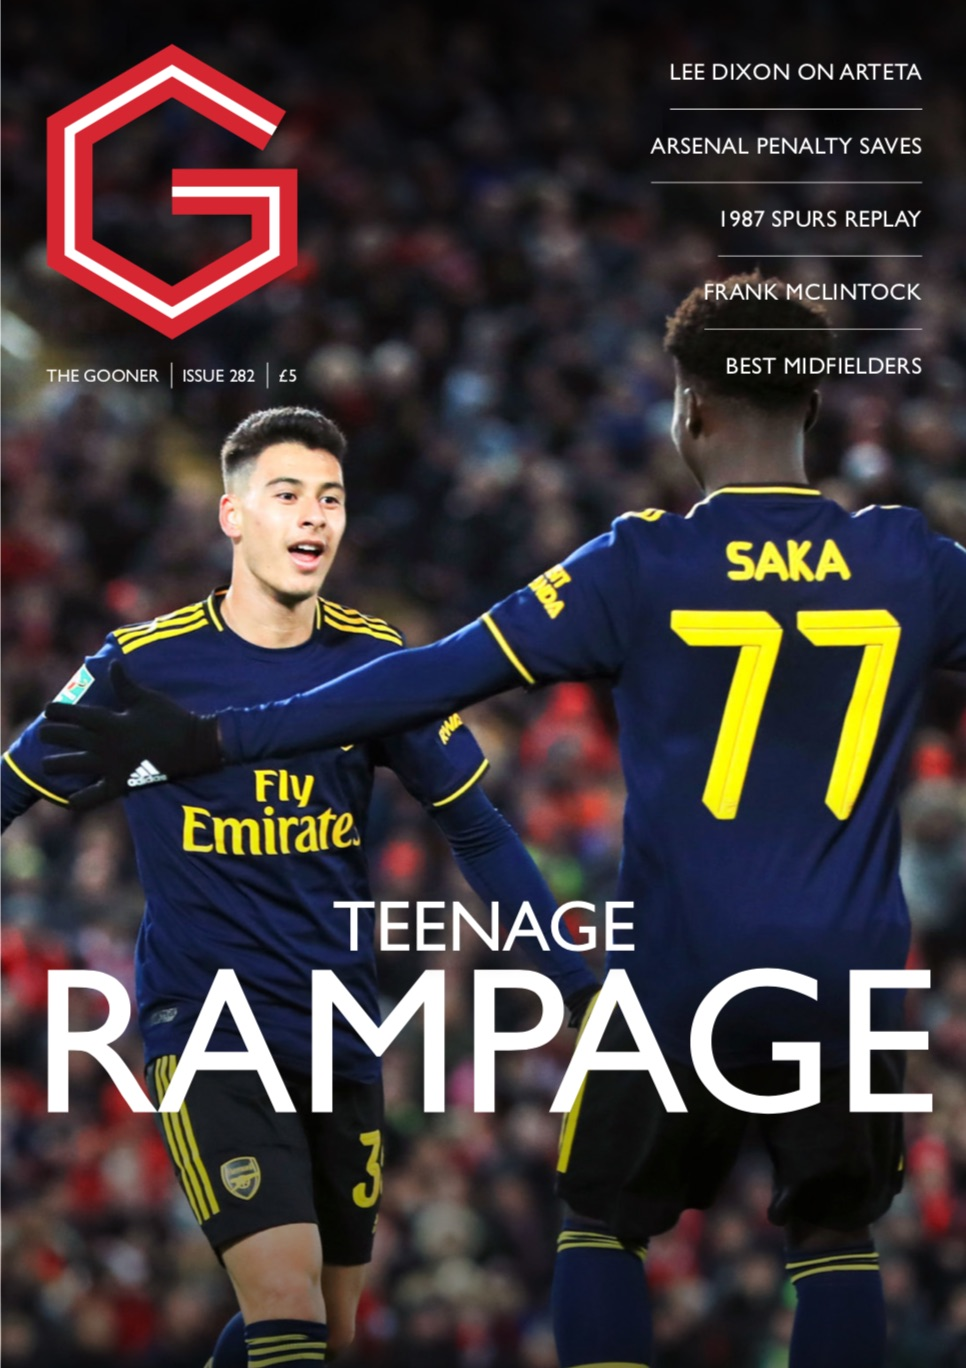 Gooner Issue 282 - Front Cover